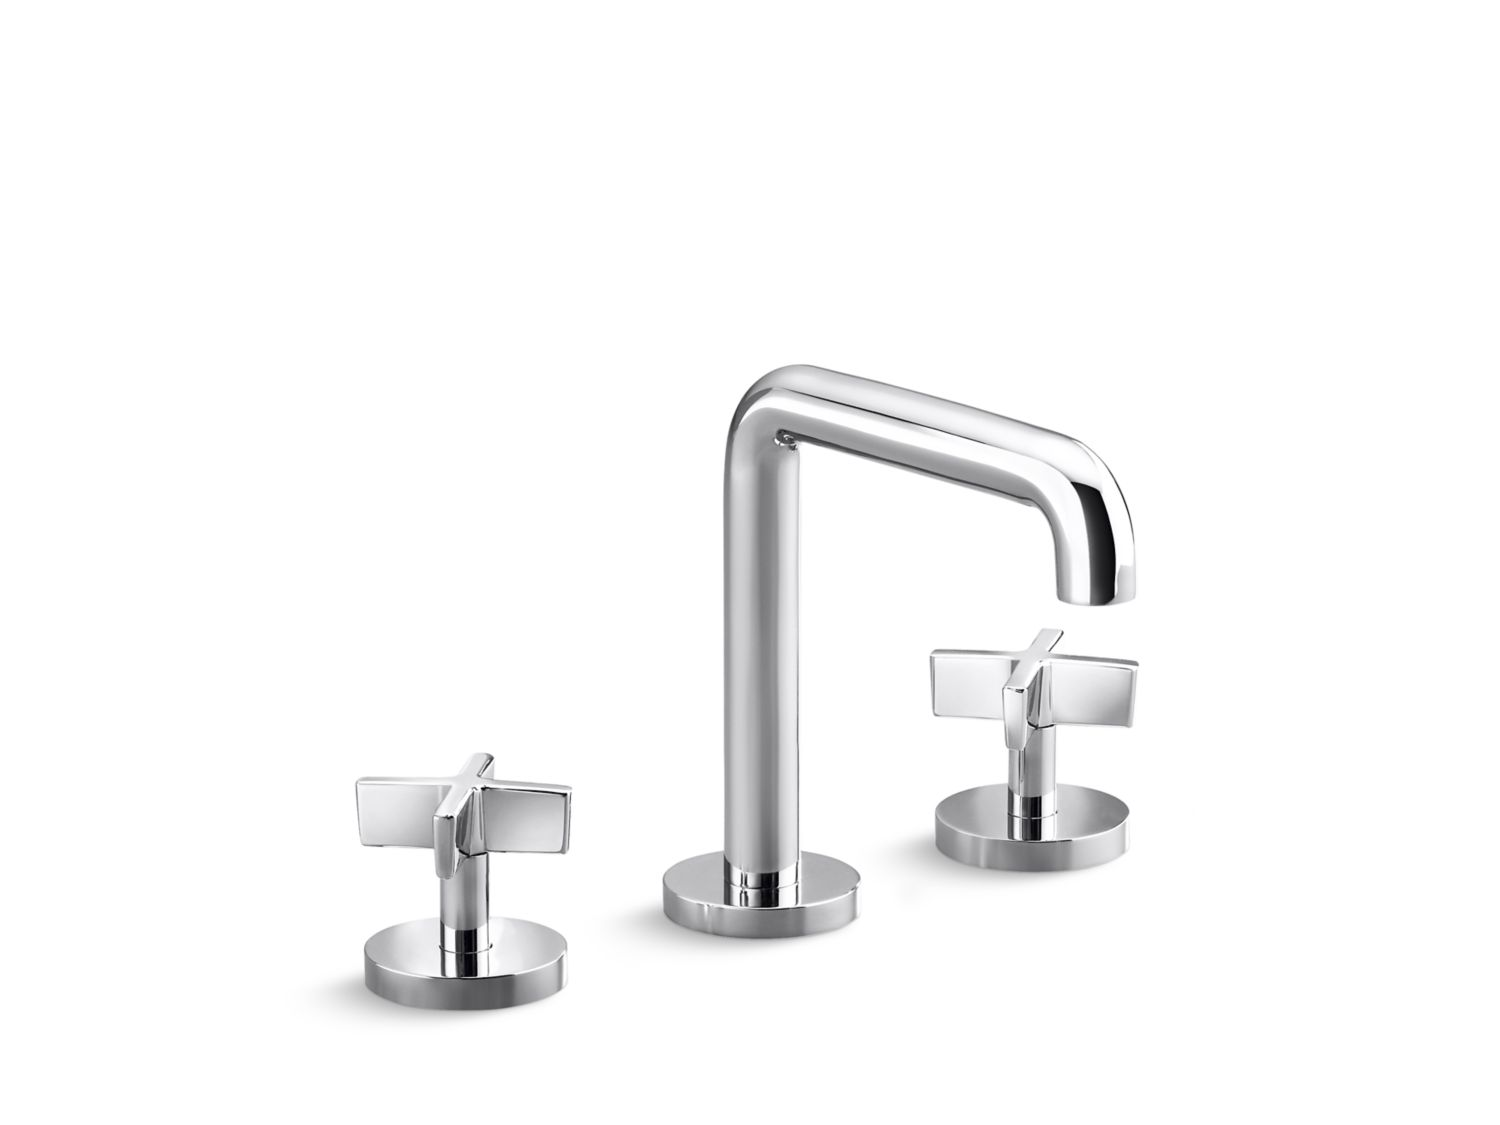 One Sink Faucet, Tall-Spout, Cross Handles | P24492-CR | Faucets ...